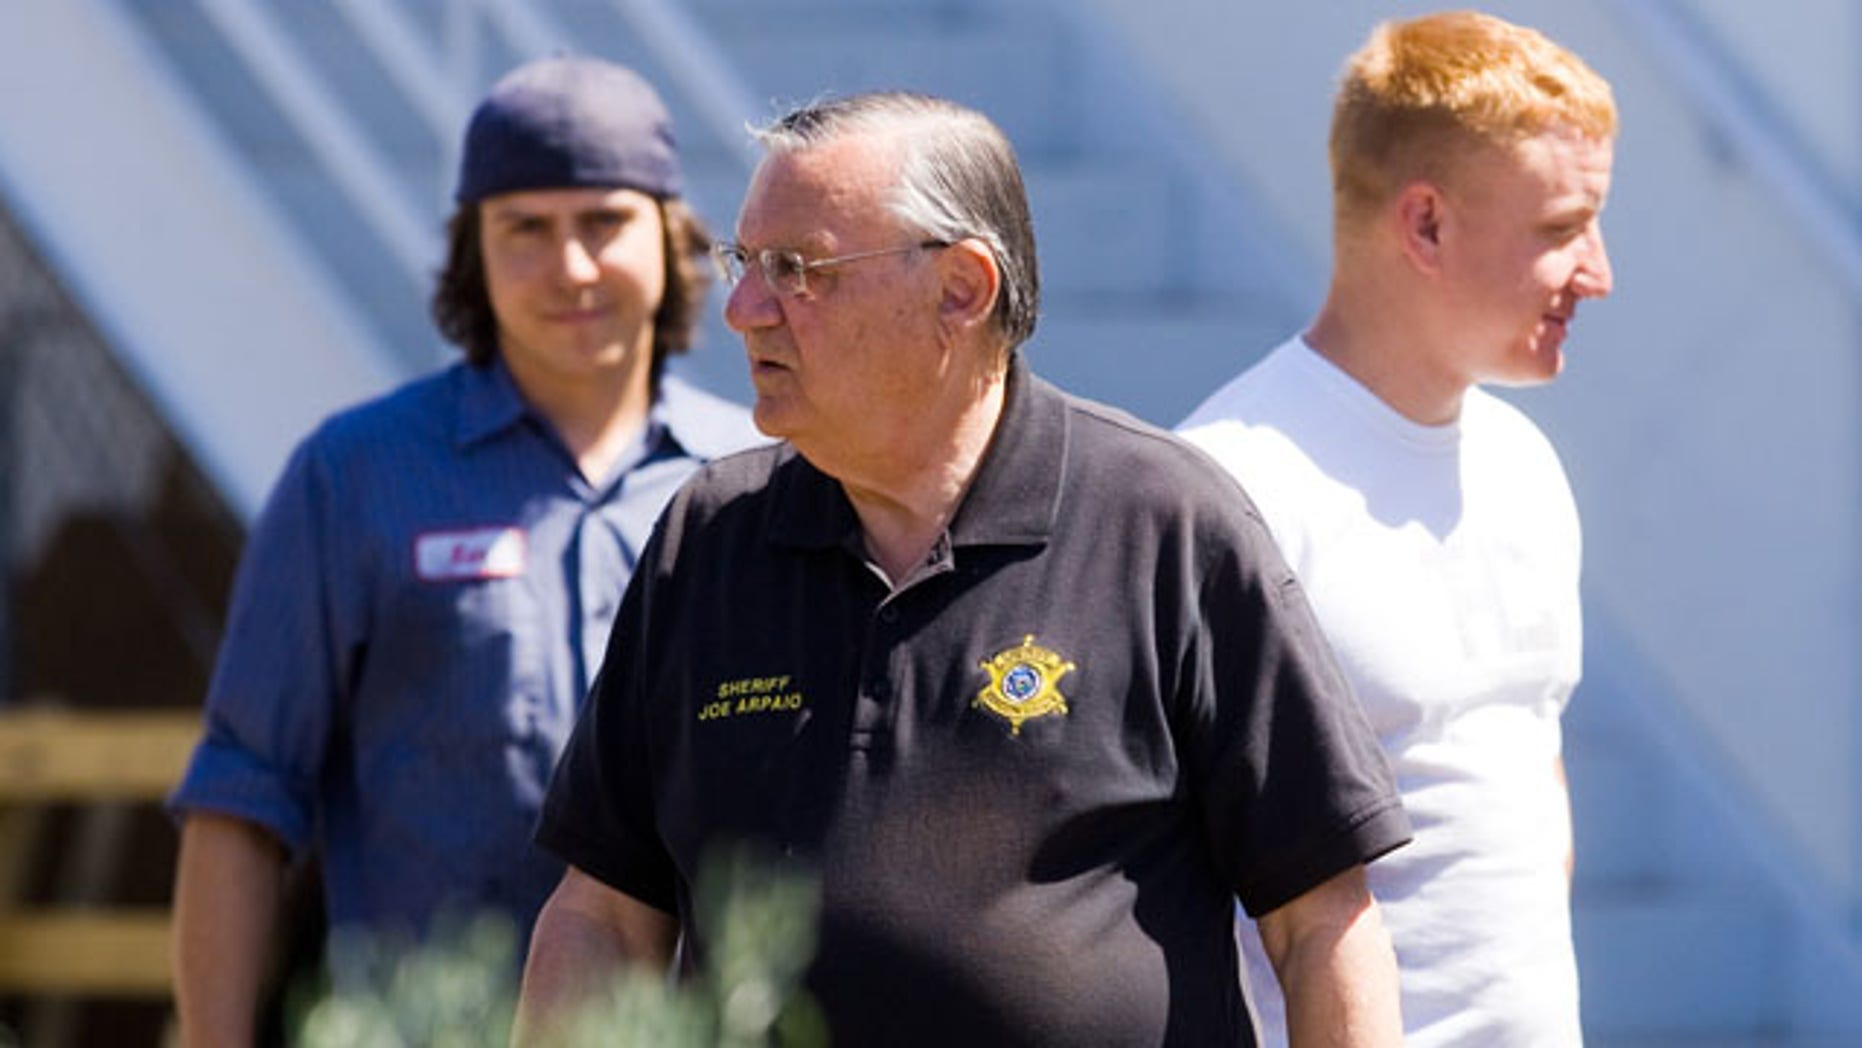 May 6: Maricopa County Sheriff Joe Arpaio talks with workers after an immigration raid on a business in west Phoenix.